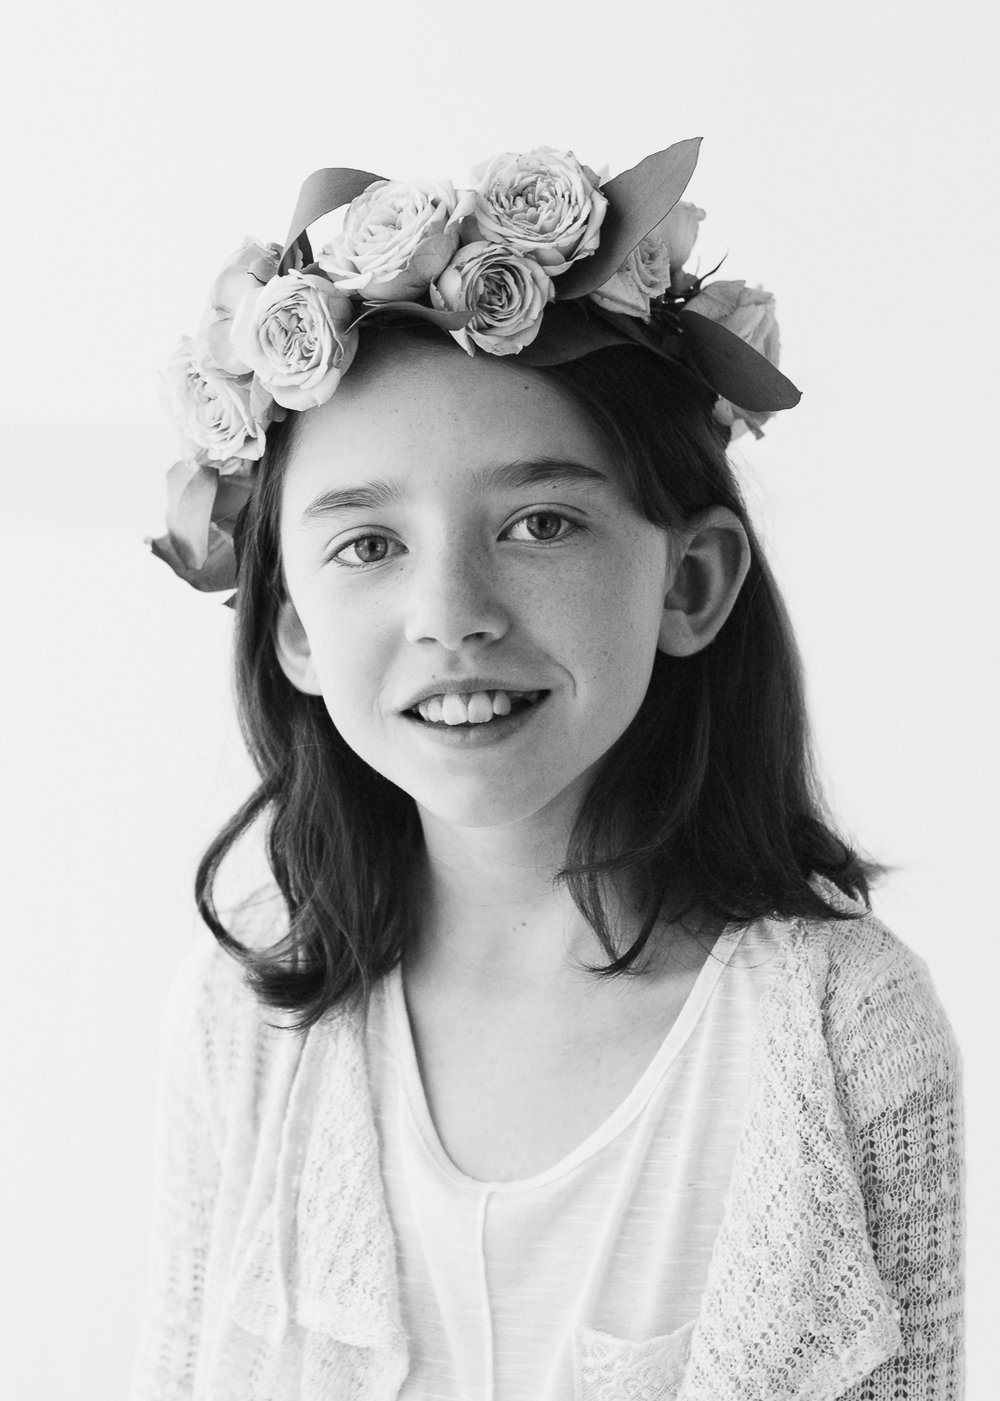 2cedarsphoto-bw-portrait-girl-flower-crown.jpg